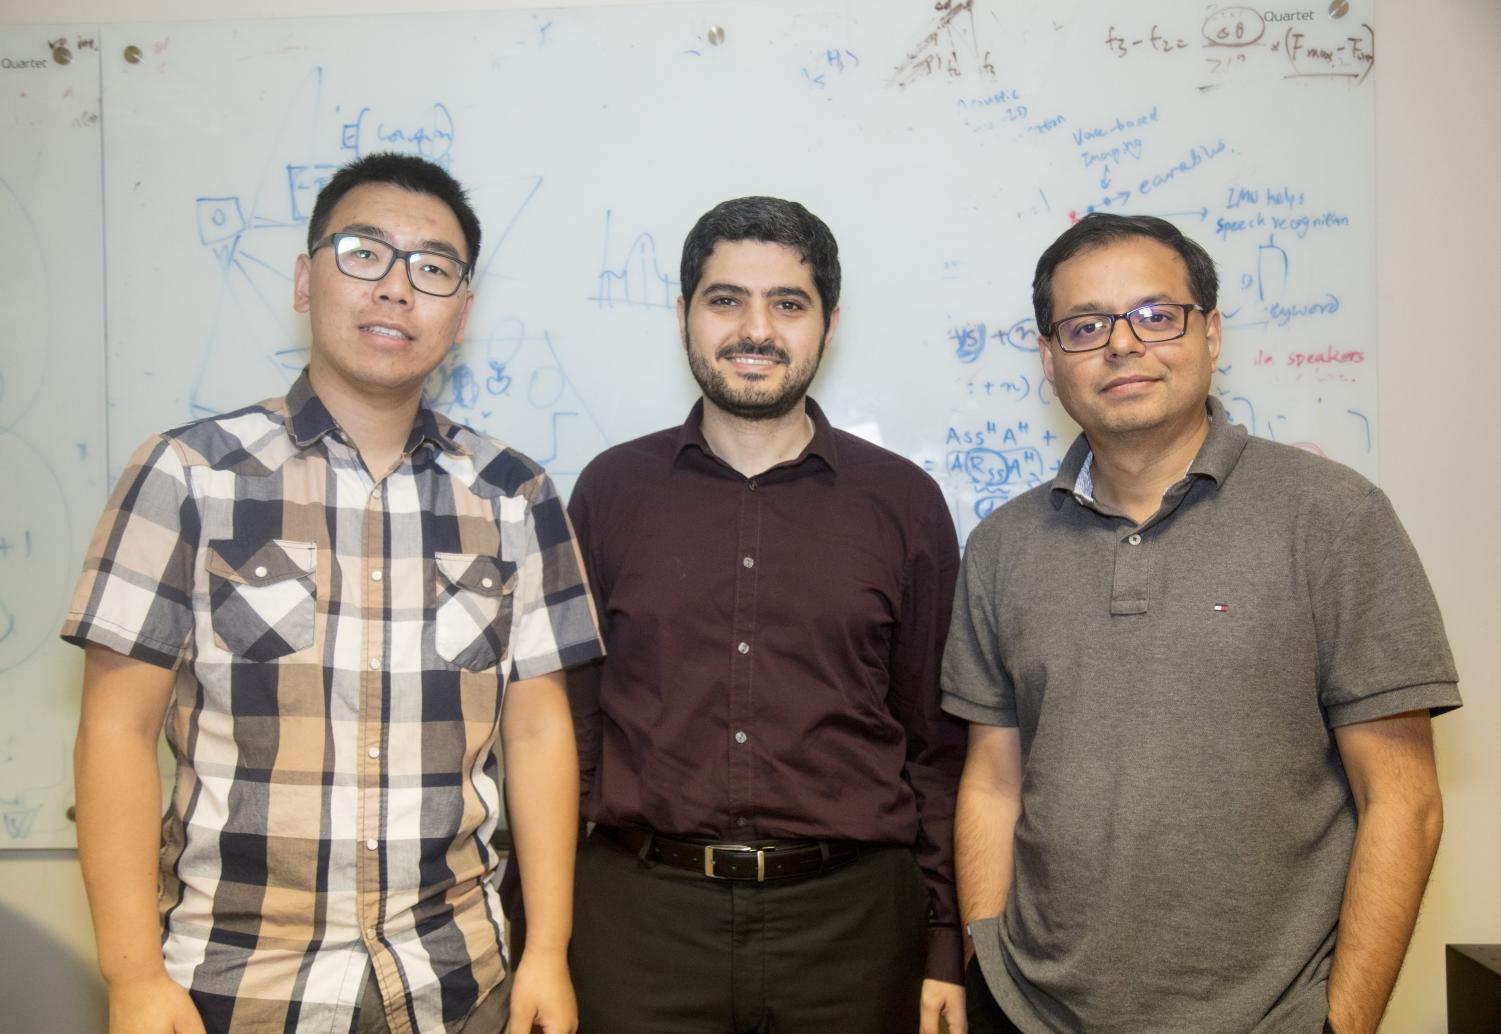 Sheng Shen, Romit Roy Choudhury and Haitham Al-Hassanieh together at CSL 241 after discussing their research with their team.